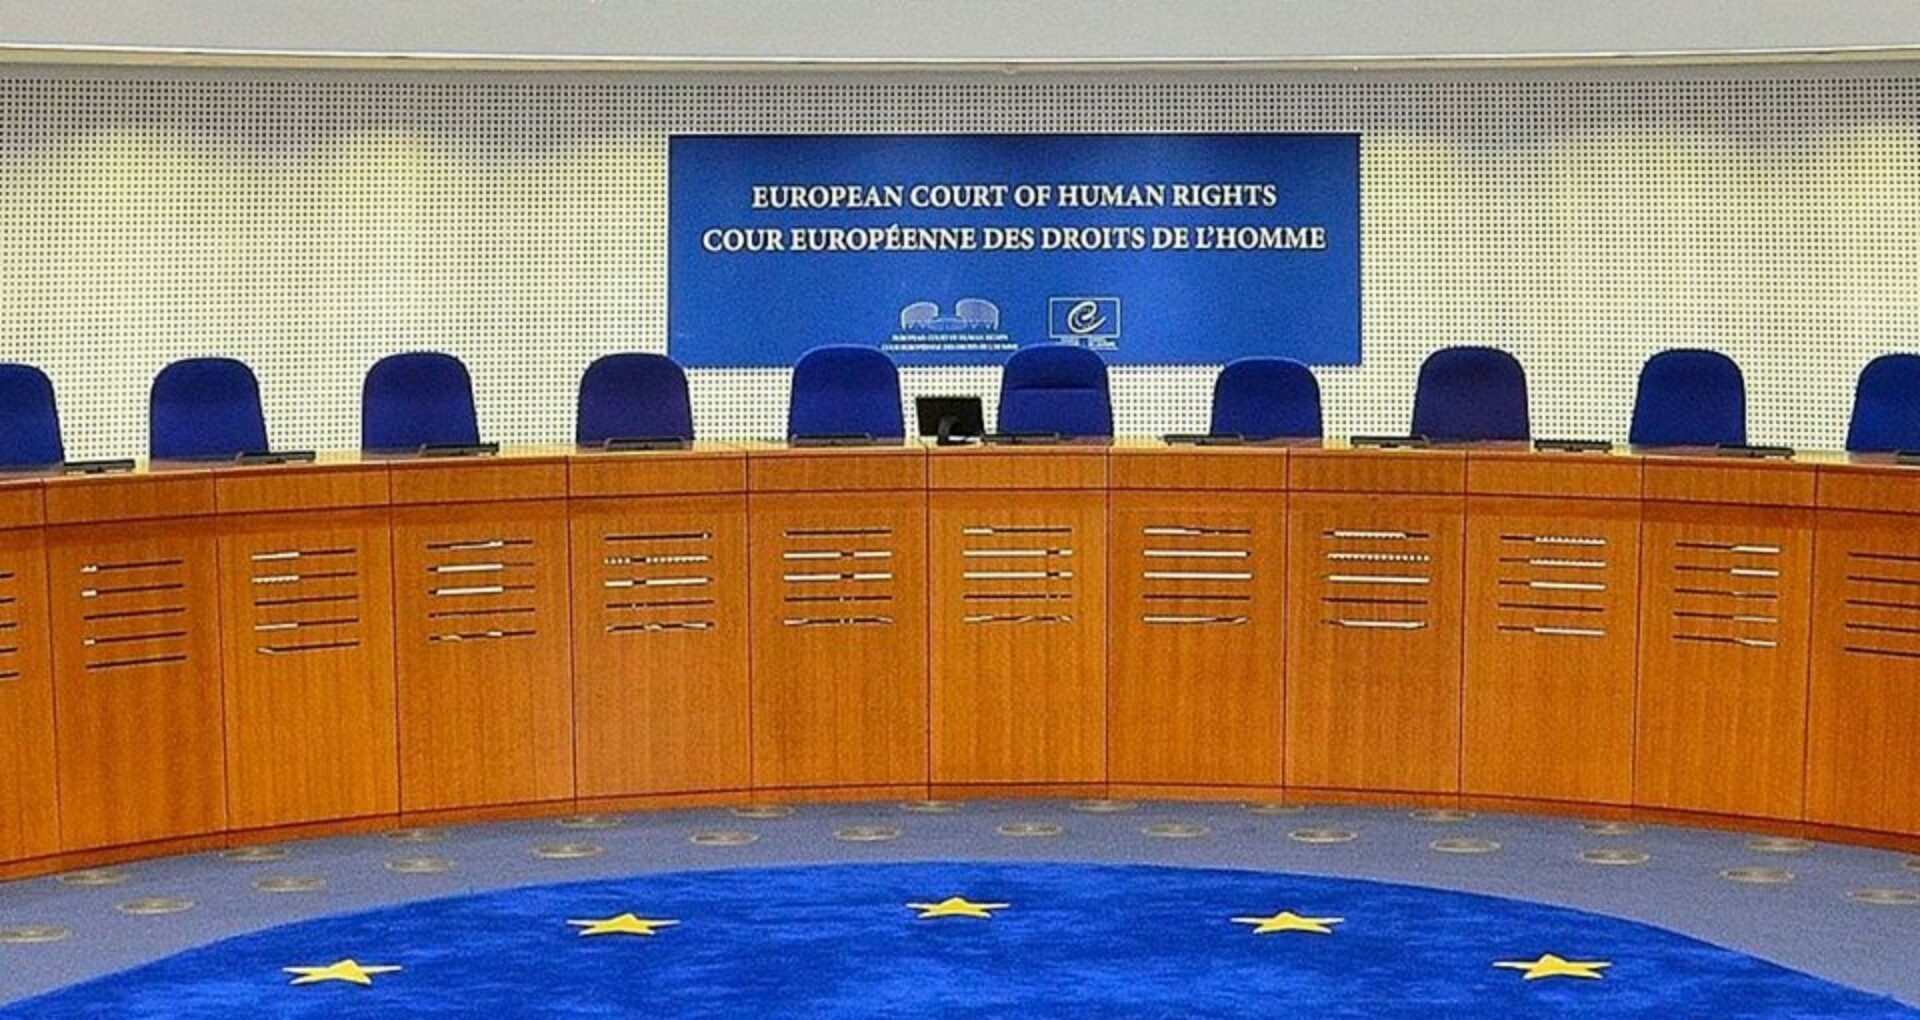 IPRE and CRJM Offered Several Proposals for Improving the Selection Procedure for a New Judge at the ECtHR